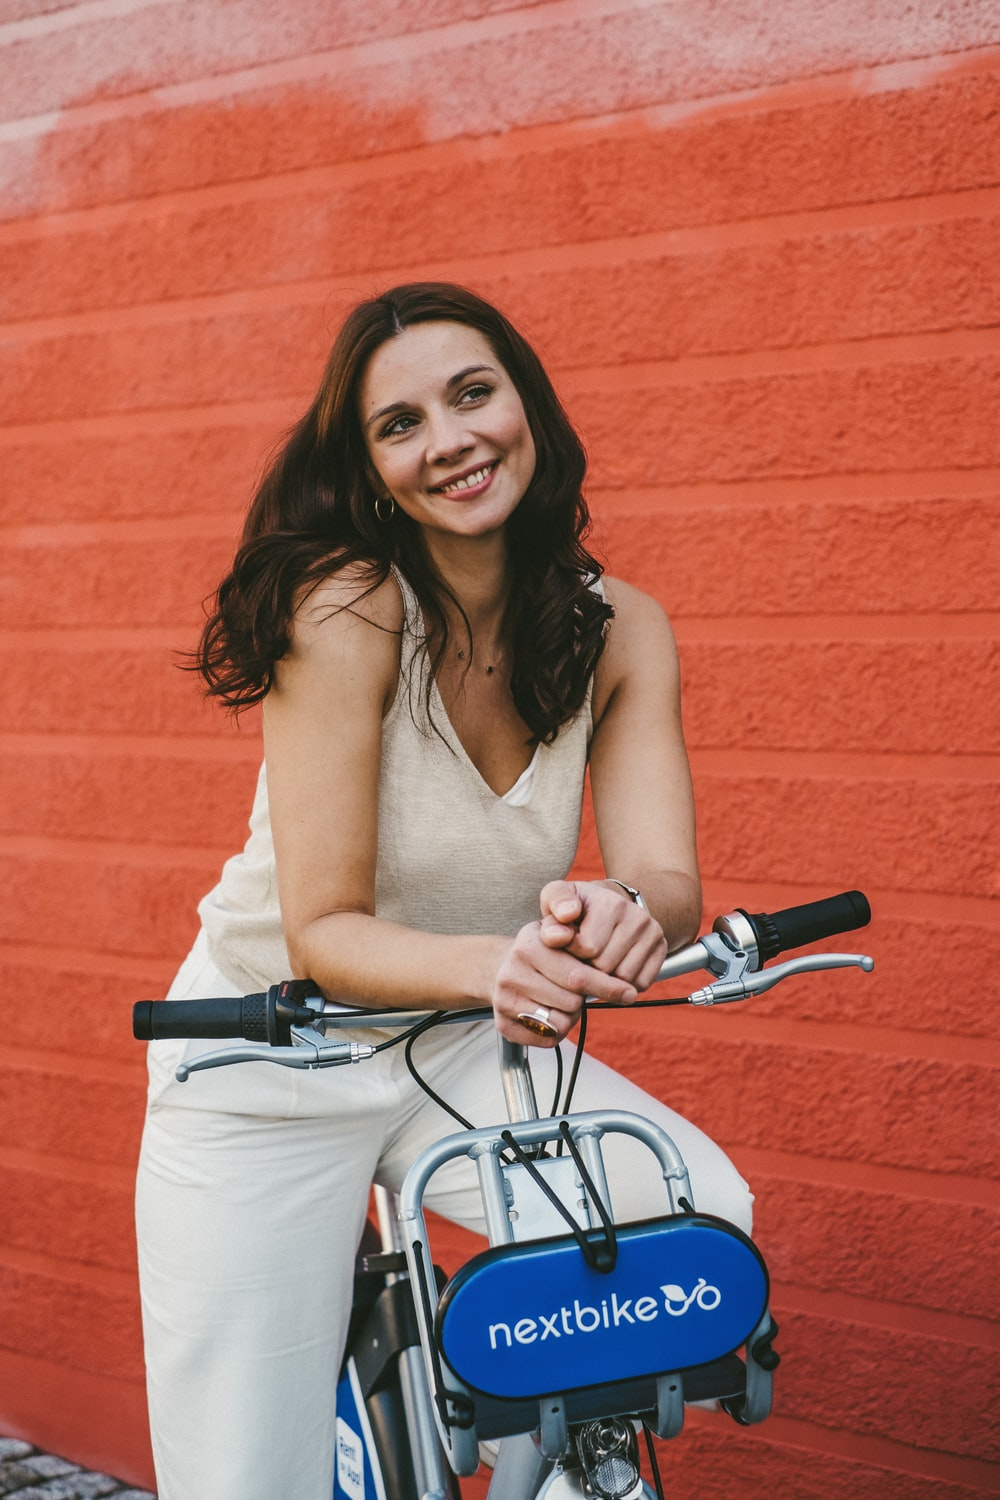 woman in brown tank top riding on bicycle